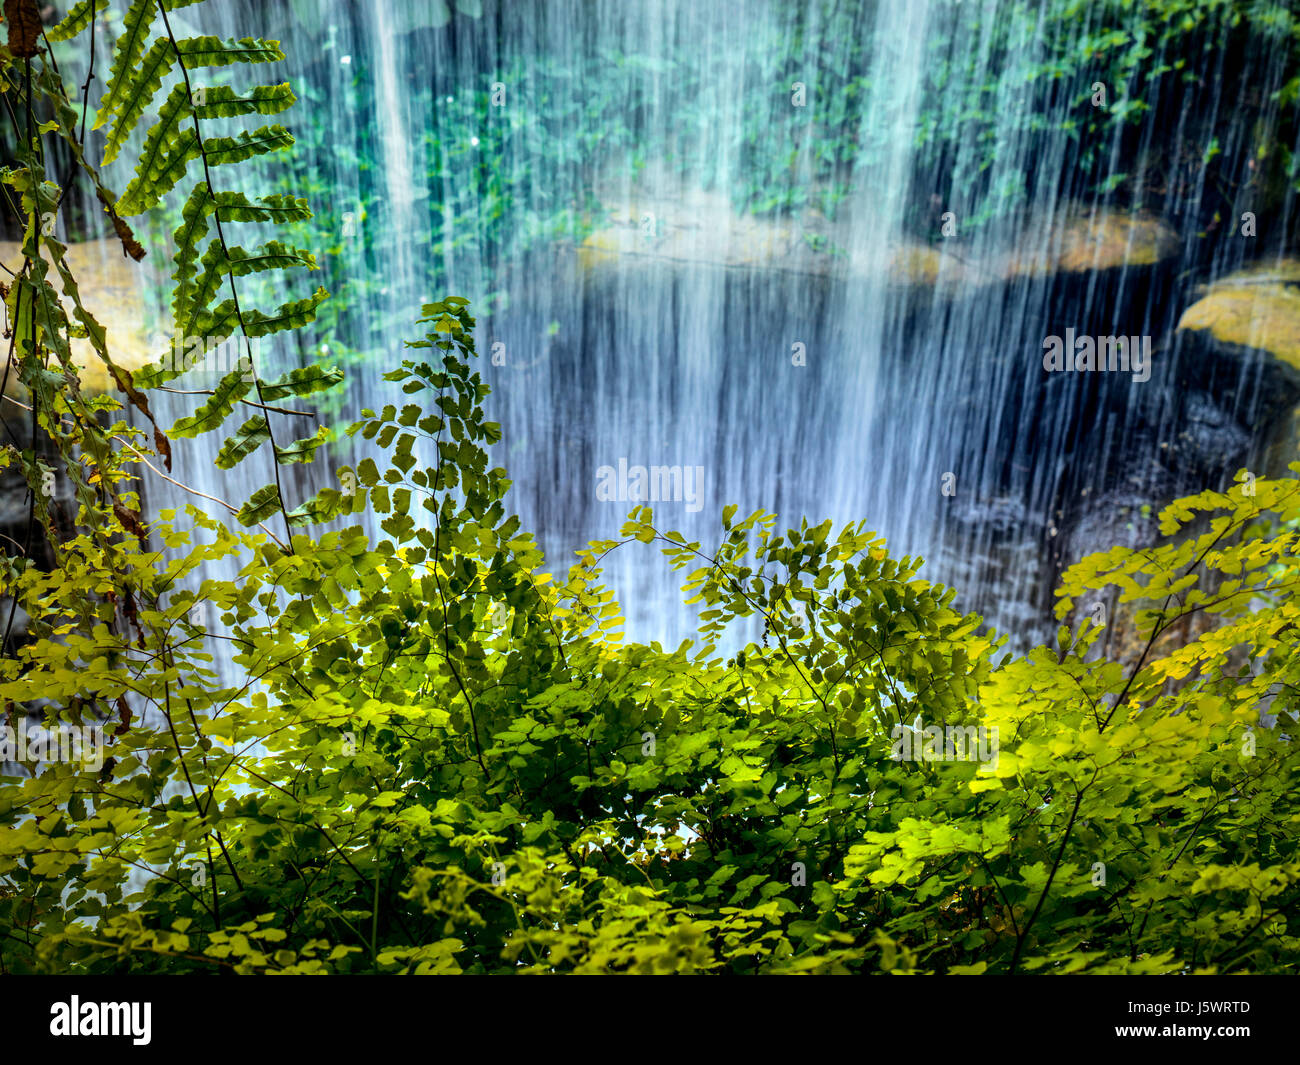 Waterfall in lush tropical garden situation - Stock Image